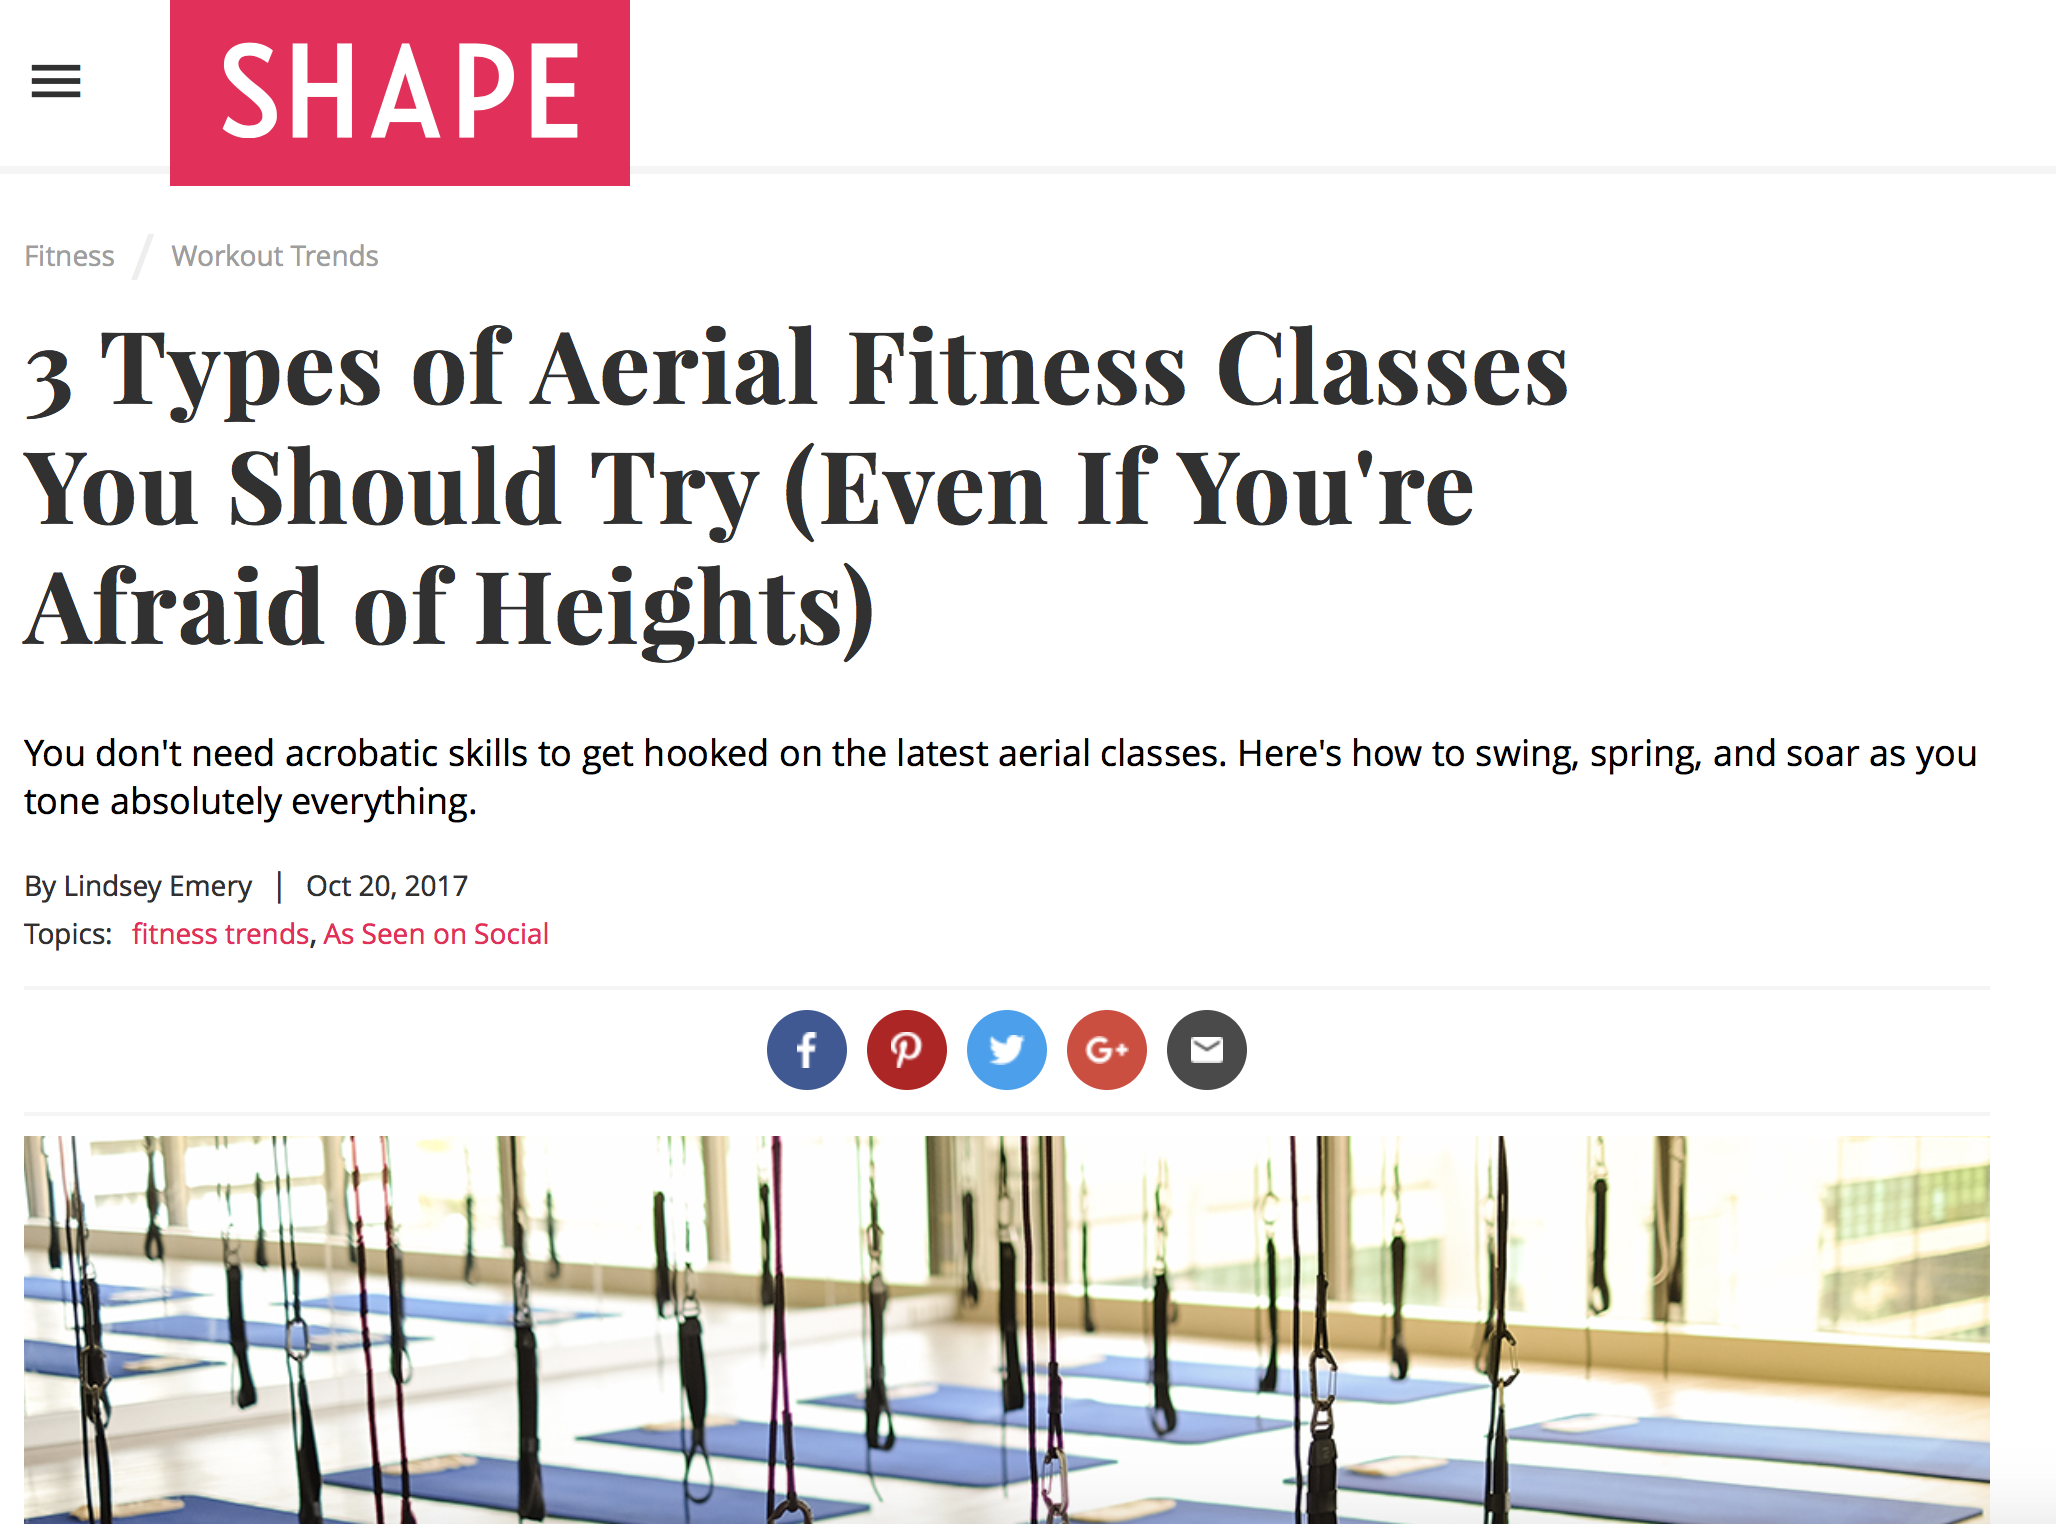 Fitness Article - with Crunch Fitness